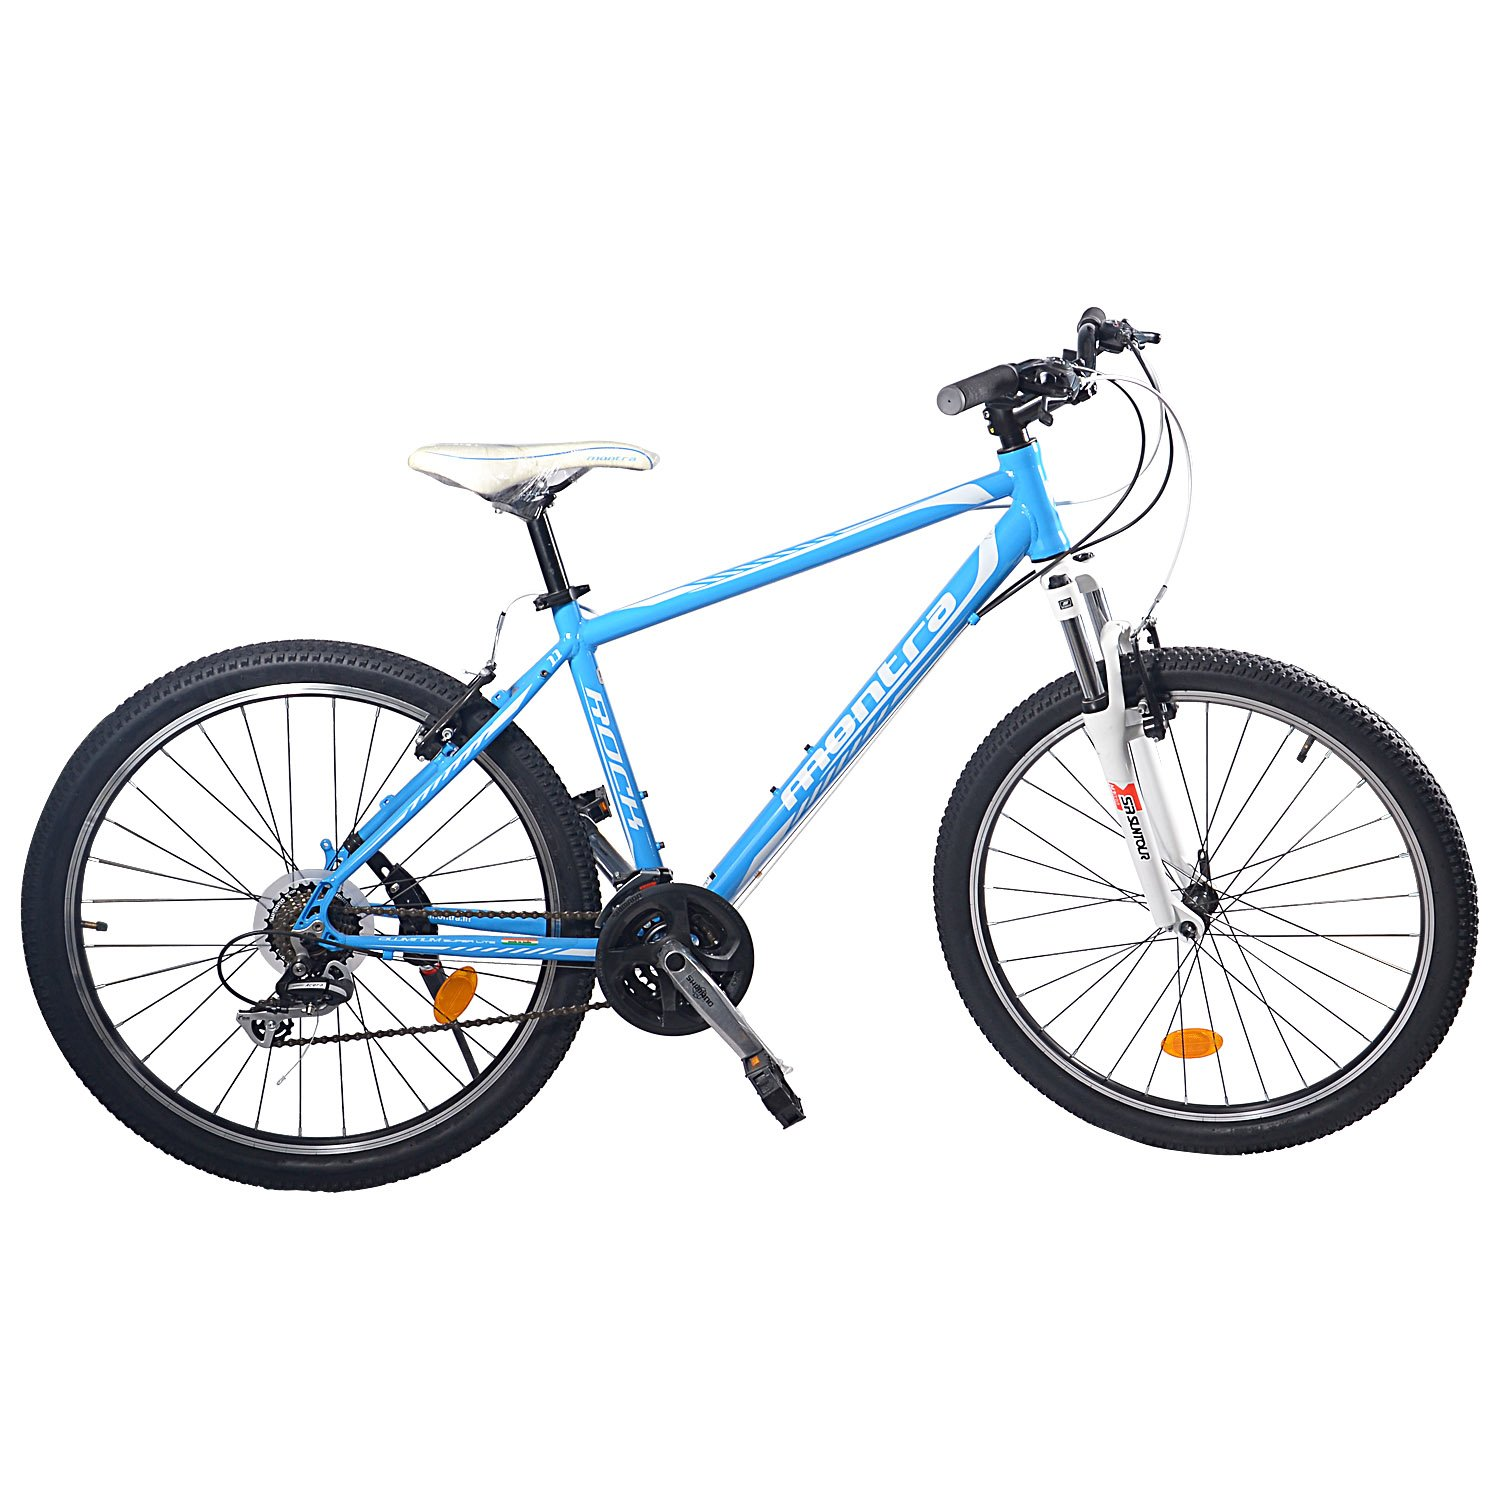 Buy Montra Rock1 1 Hi End Bicycle Blue line at Low Prices in